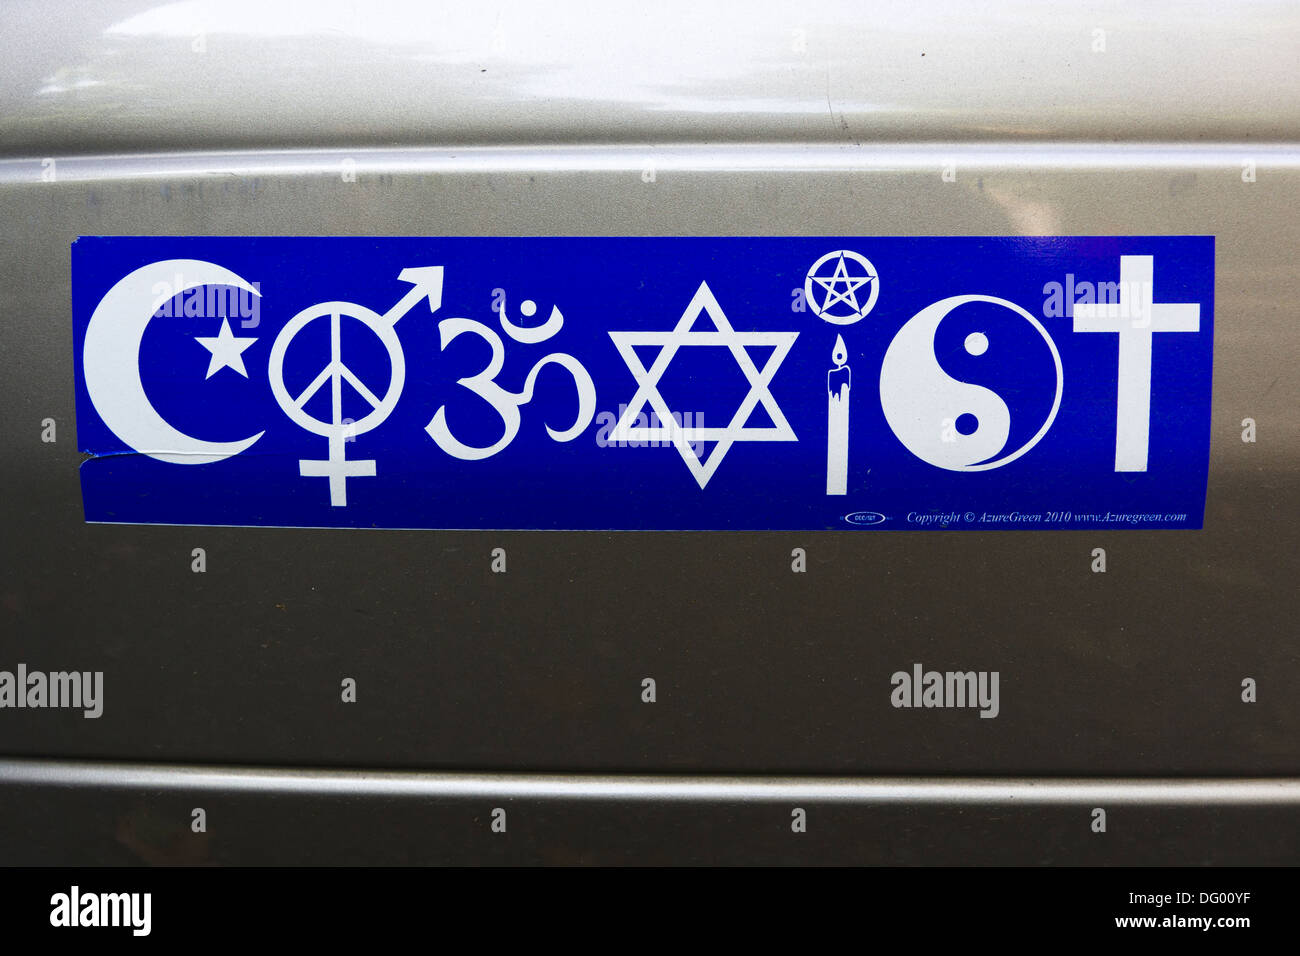 Coexist bumper sticker with symbols of various religions stock coexist bumper sticker with symbols of various religions biocorpaavc